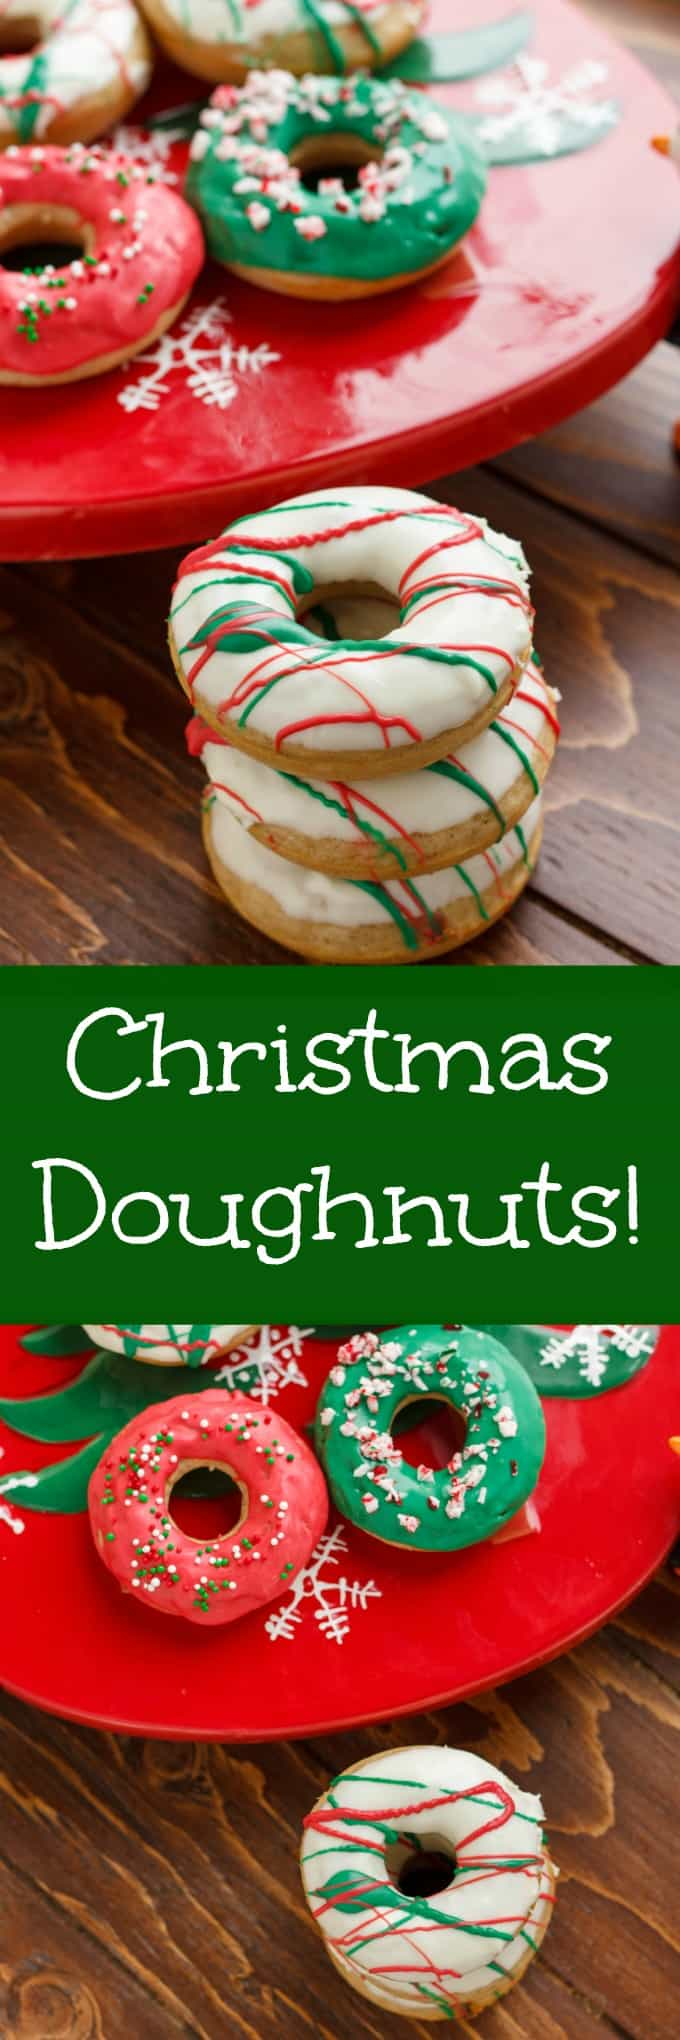 Christmas Doughnuts with Candy Melts Glaze